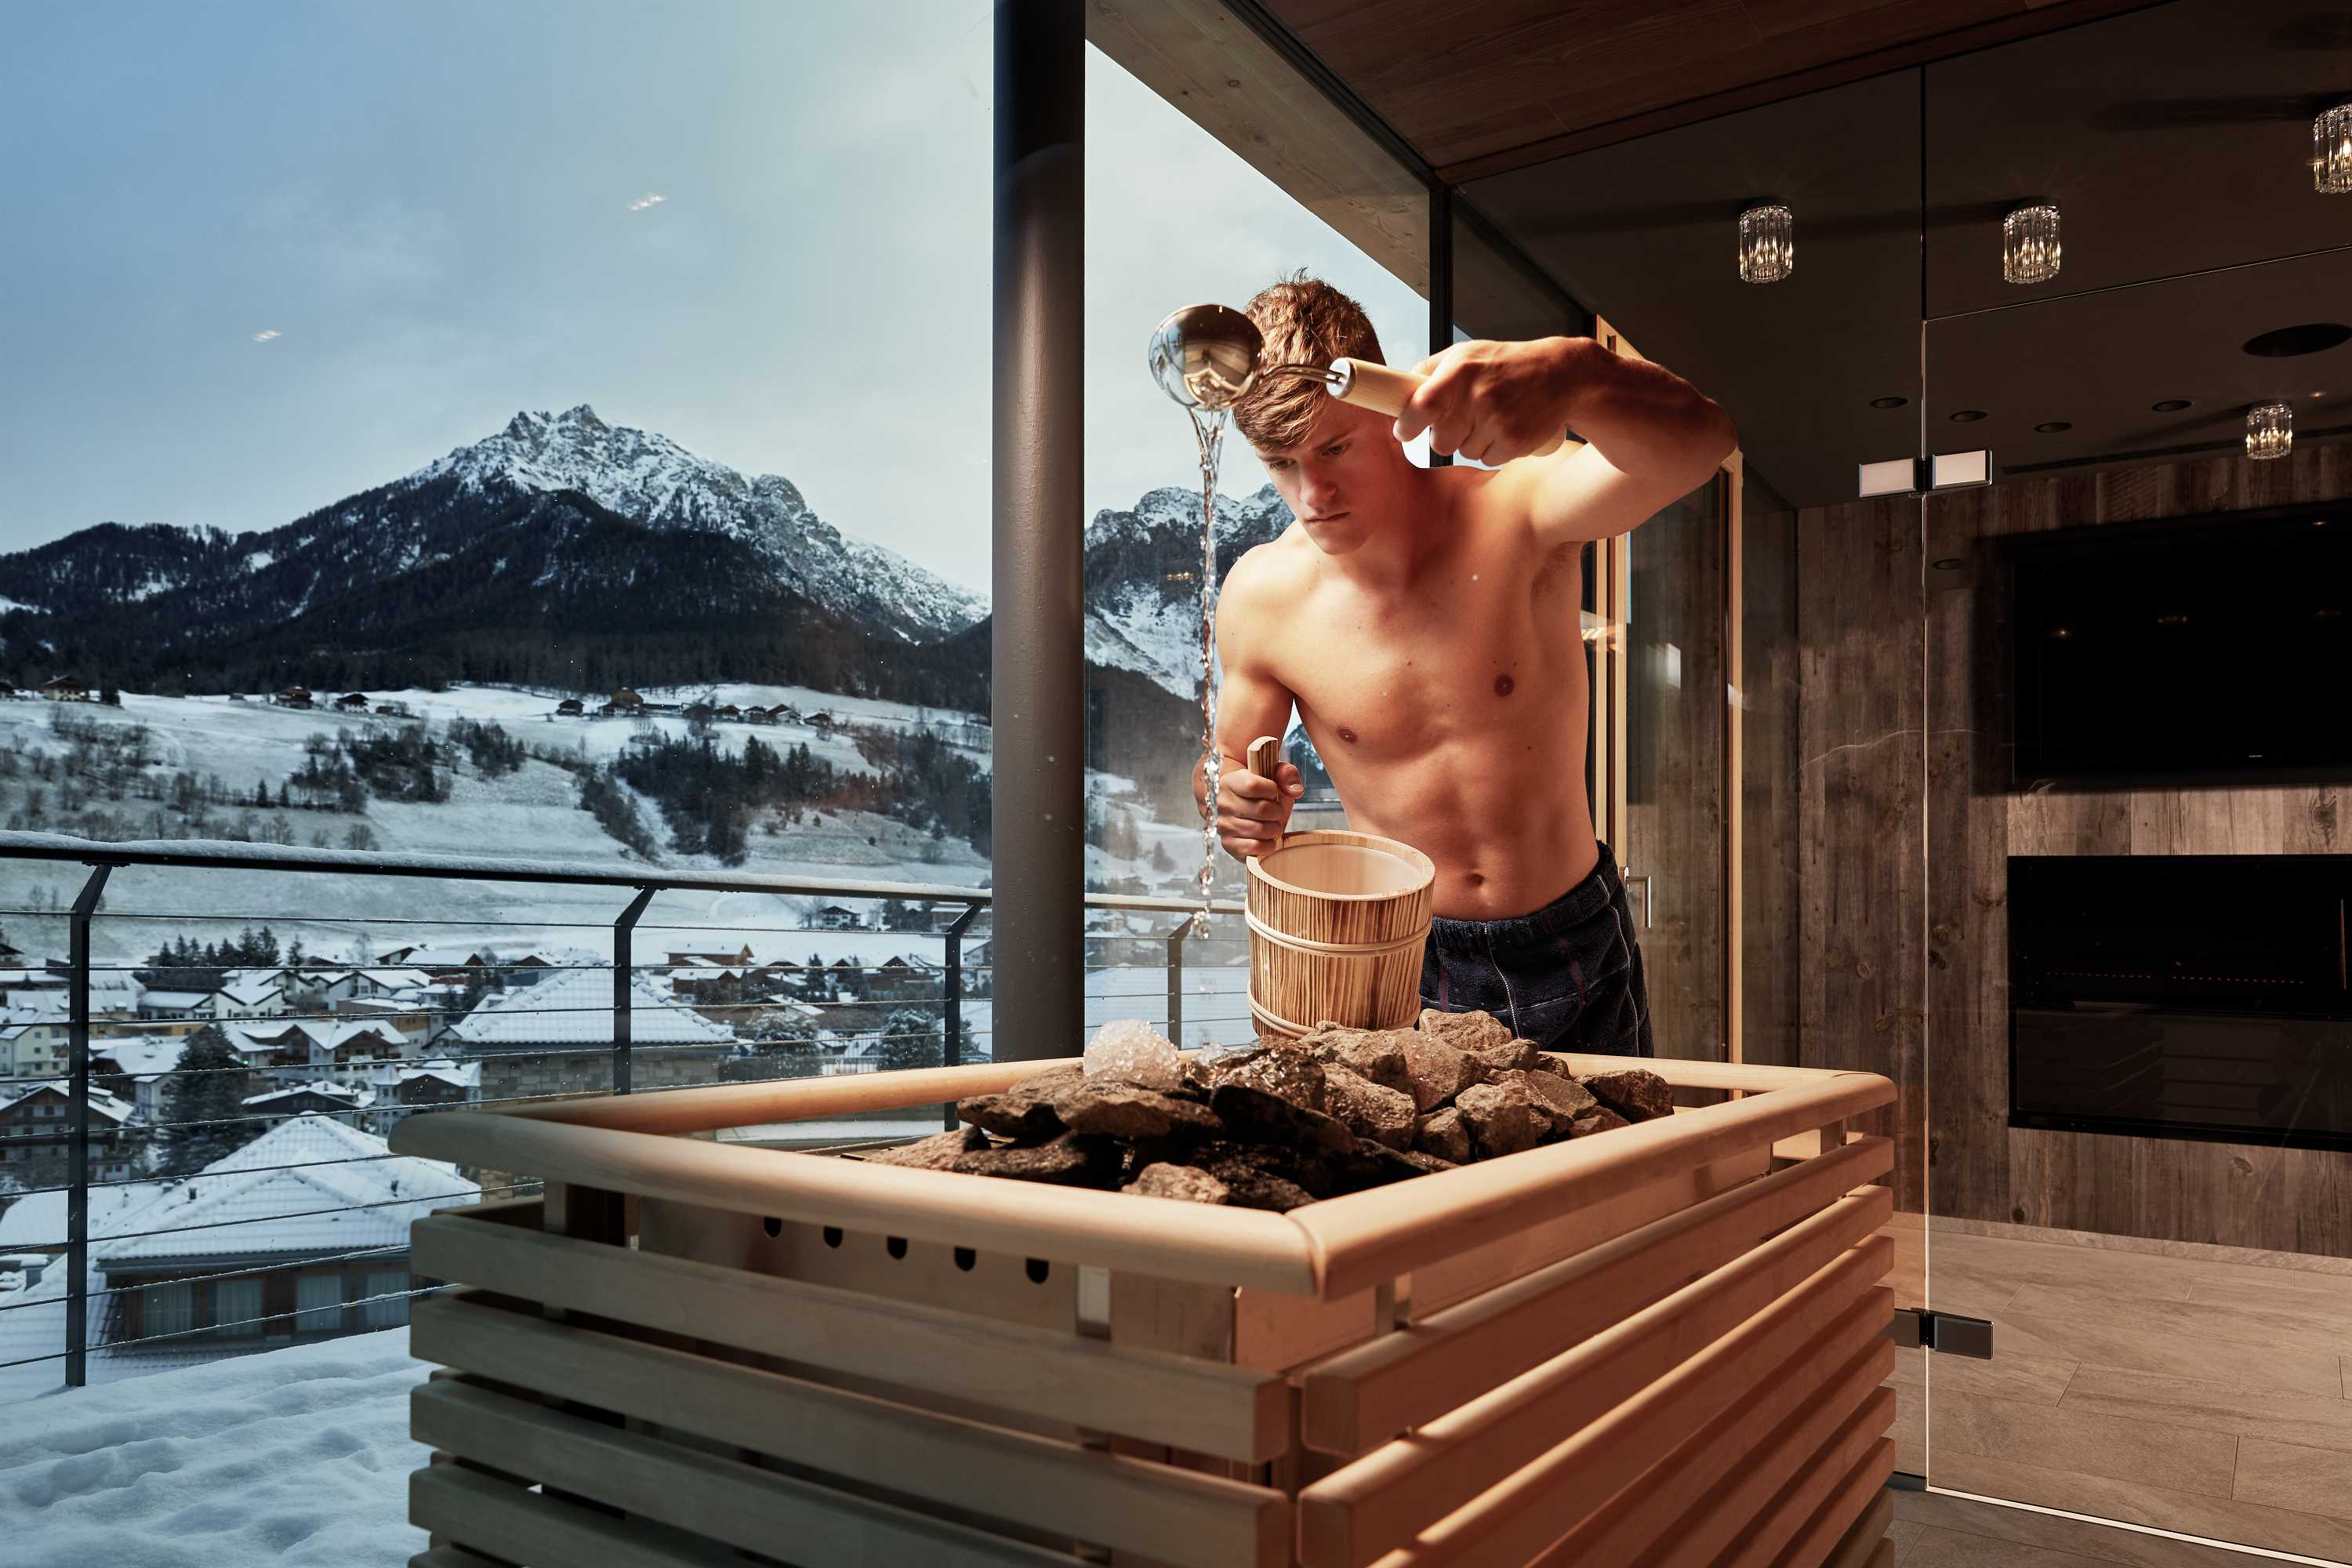 Wellness holidays in South Tyrol & ski hotel directly on the slopes of the Plan de Corones